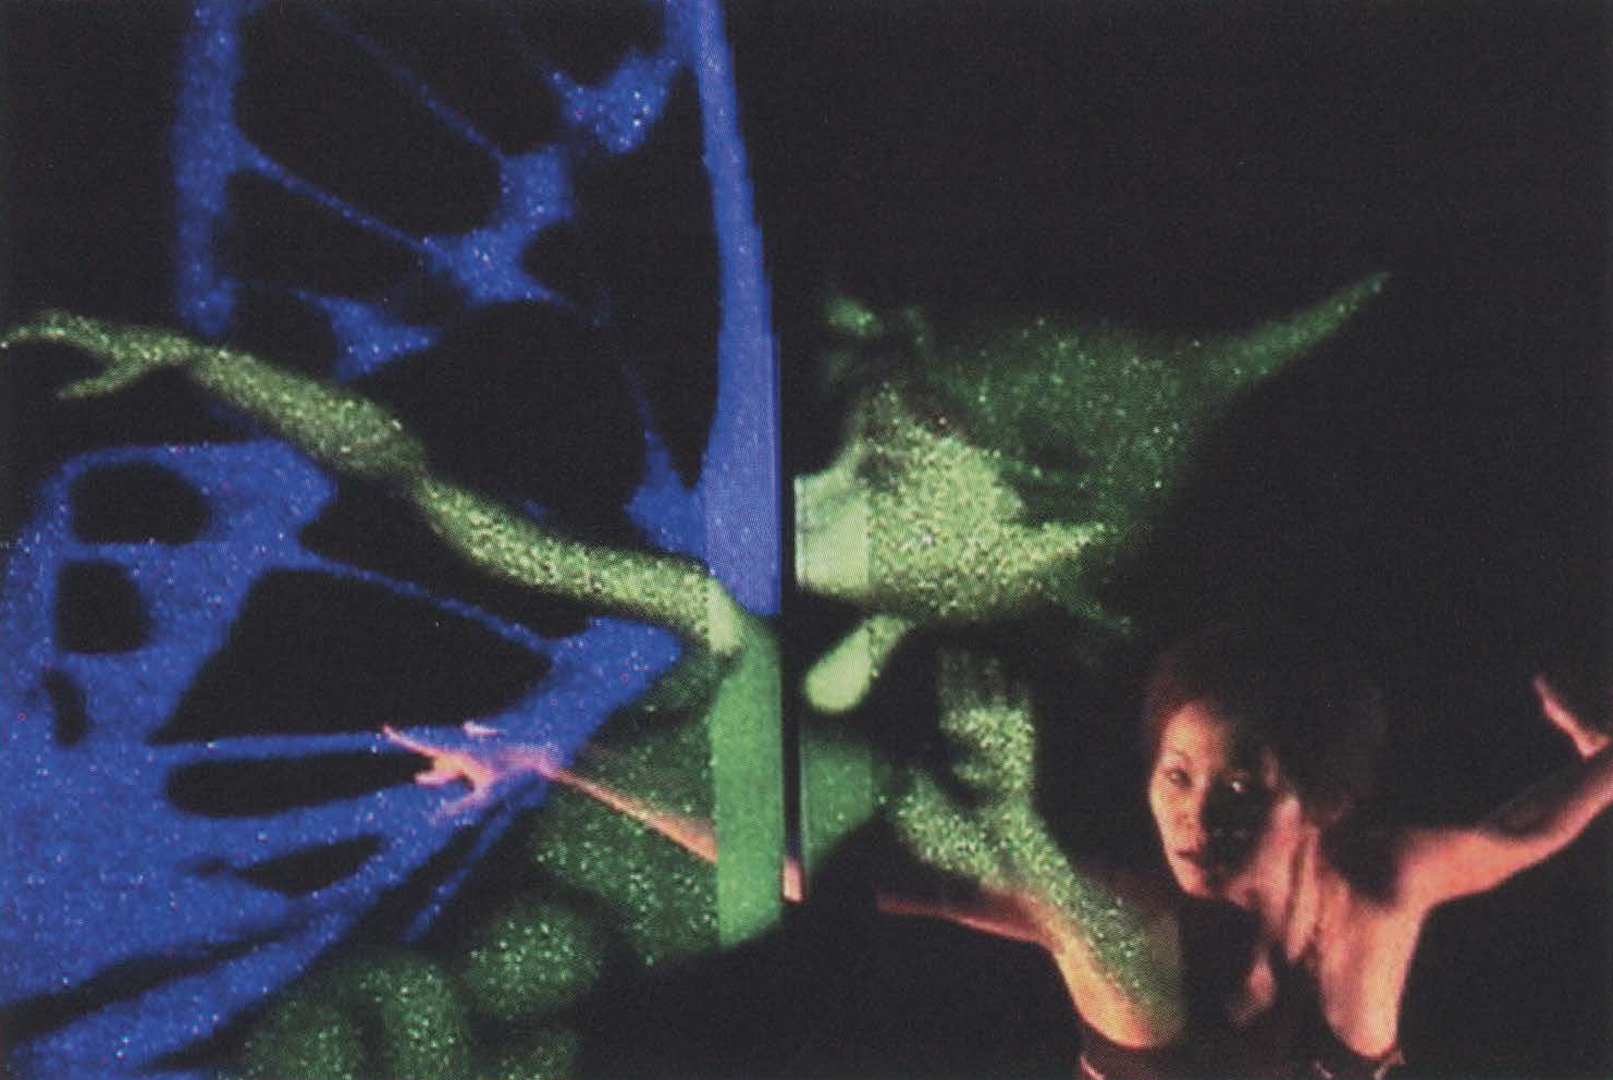 ©2003, Yu Hasegawa-Johnson, Hank Kaczmarski, Lance Chong, and Benjamin Schaeffer, Hummingbird: Multi-Reality Art